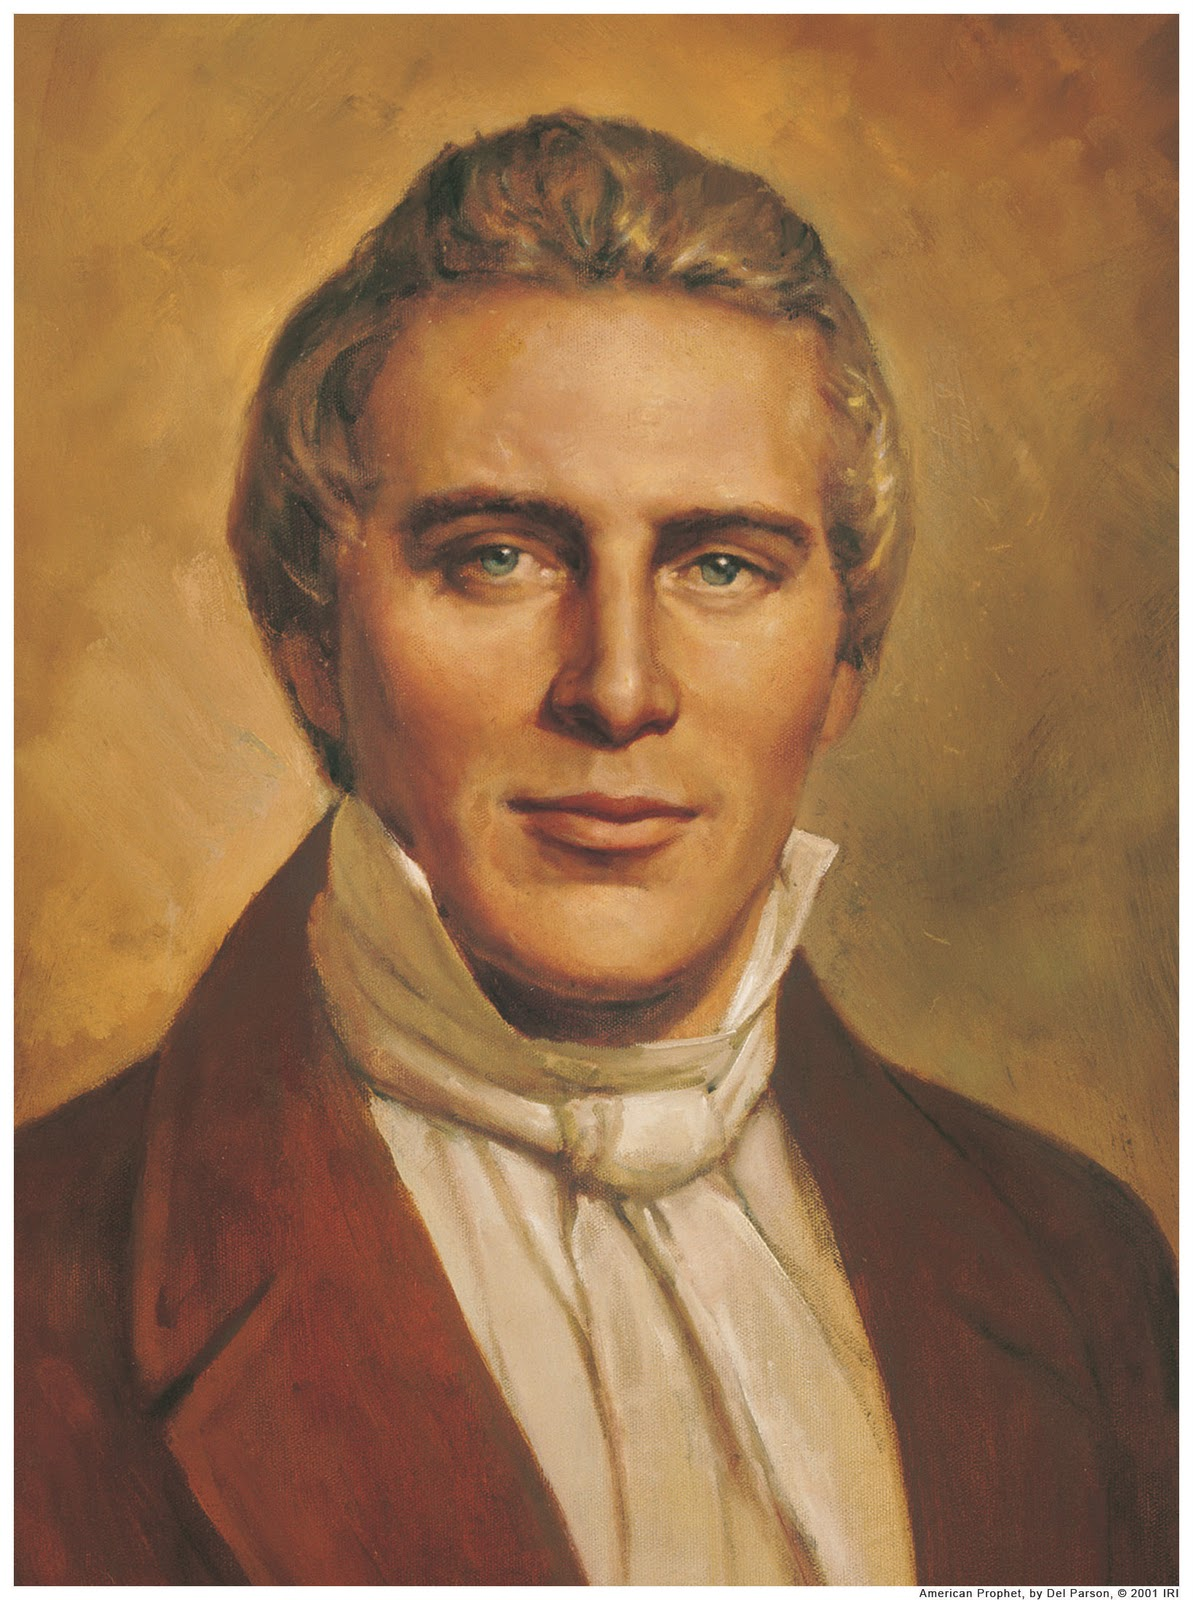 Why Did Moroni Quote Isaiah 11 to Joseph Smith? | Book of ... Joseph